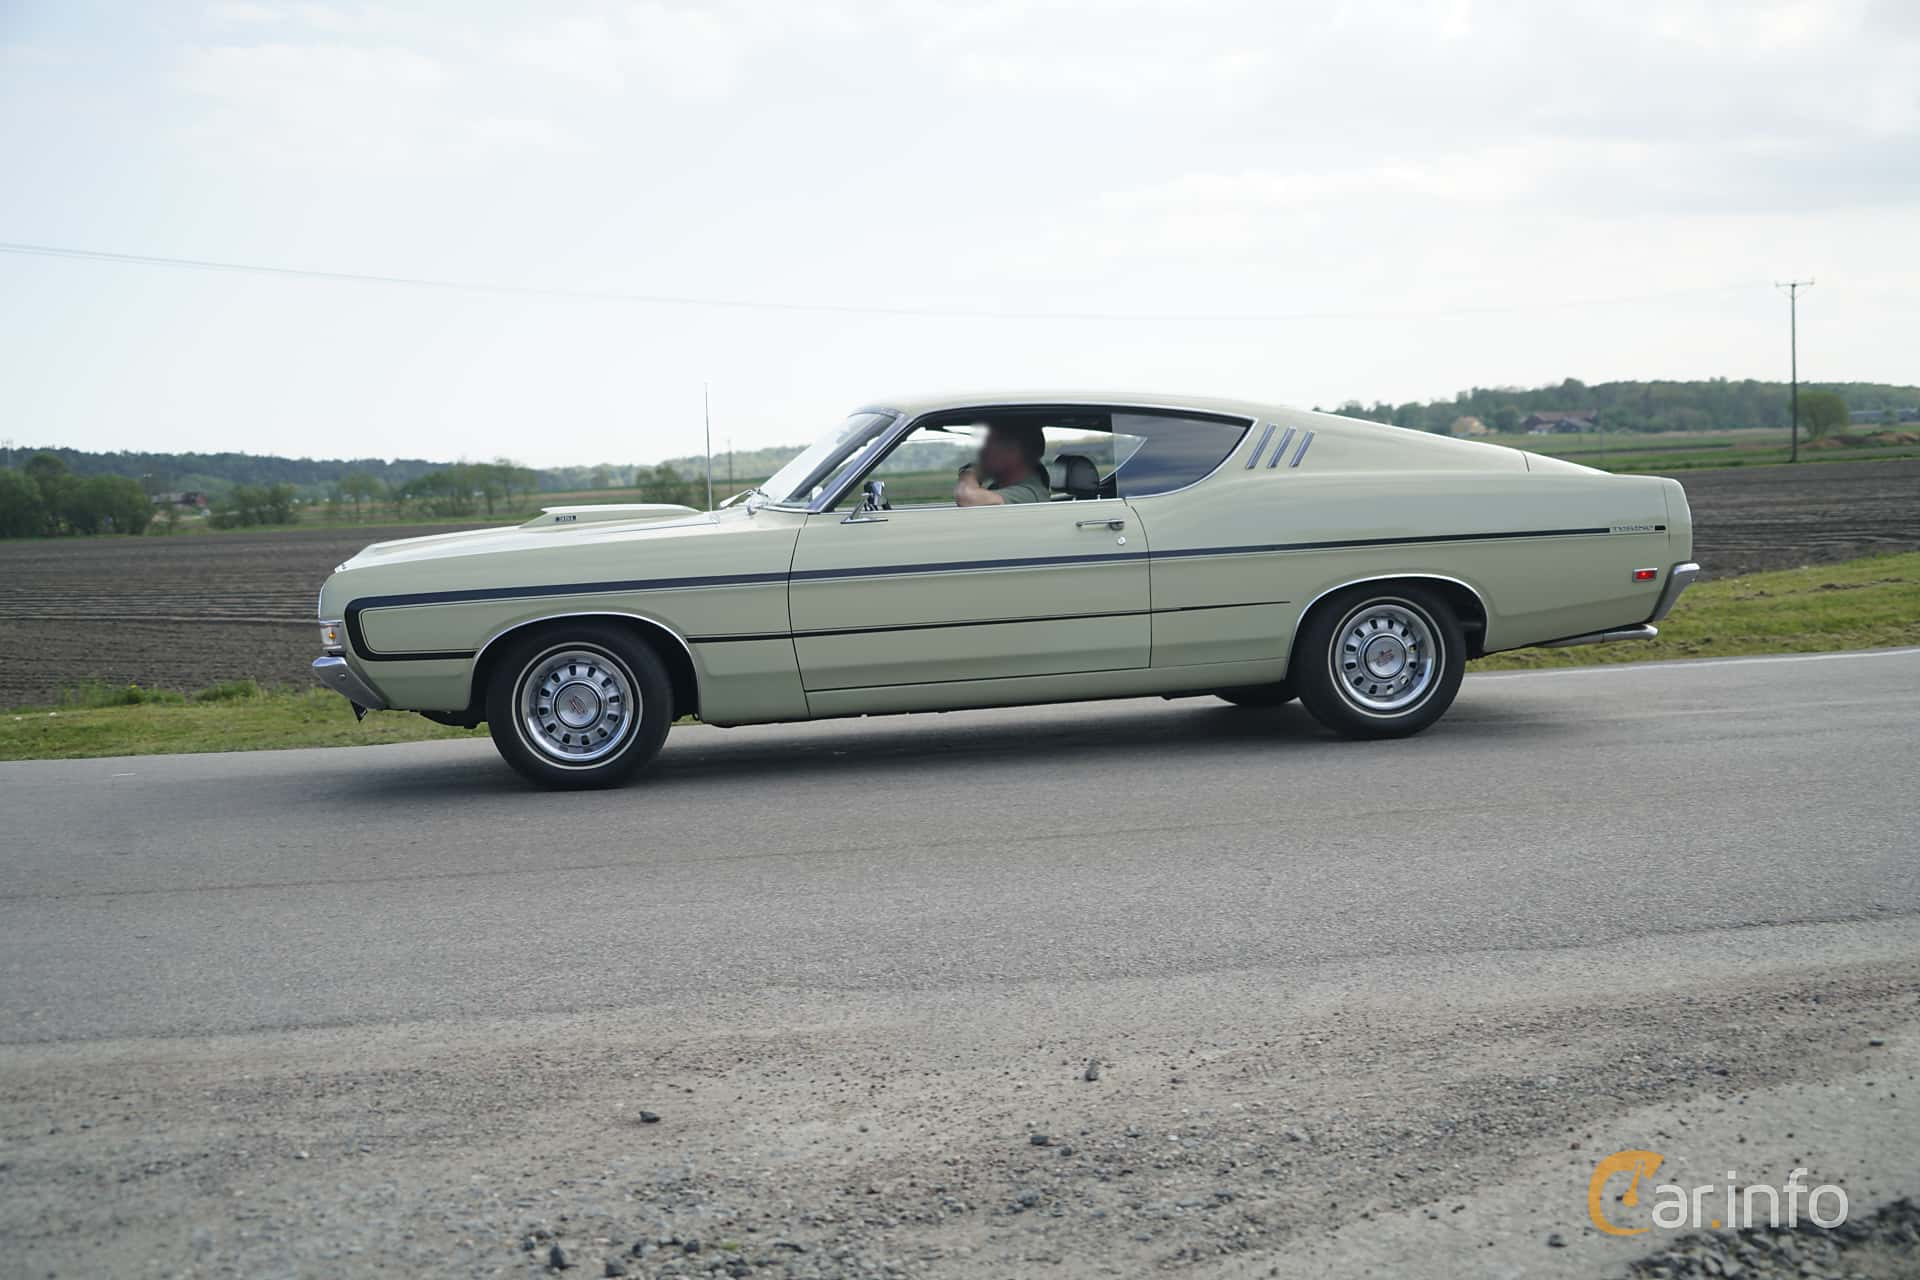 2 Images Of Ford Torino Gt Sportsroof 58 V8 Automatic 294hp 1969 Side 294ps At Tjolholm Classic